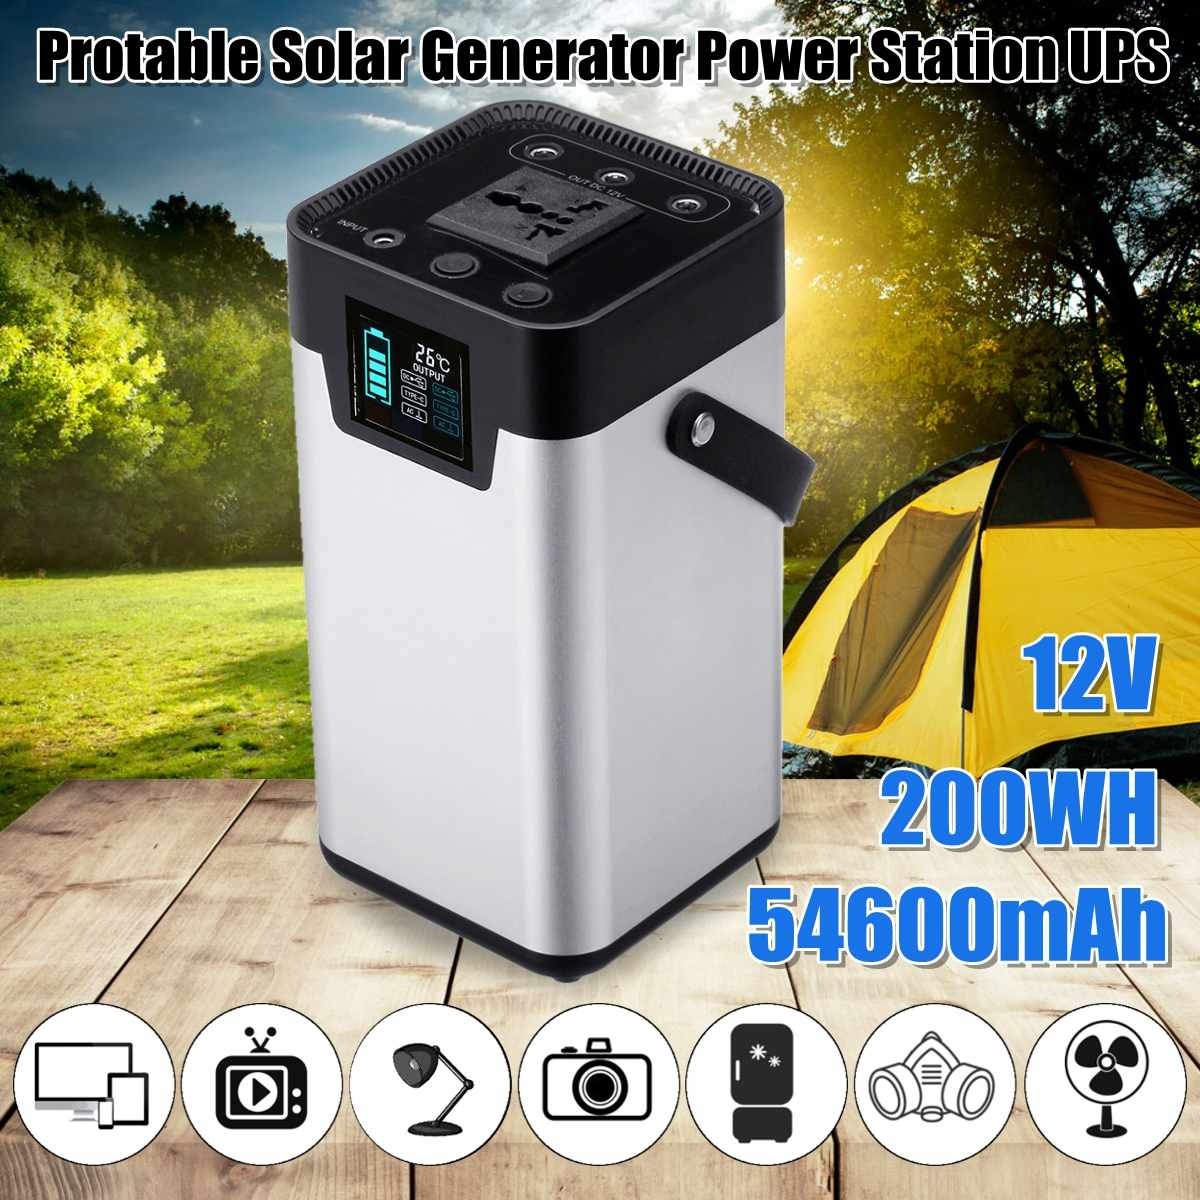 цена на 12V 200W/200Wh 54600mah Portable Solar Generator Power Station UPS Energy Storage Inverter Power Supply Outdoor Home 110V/220V